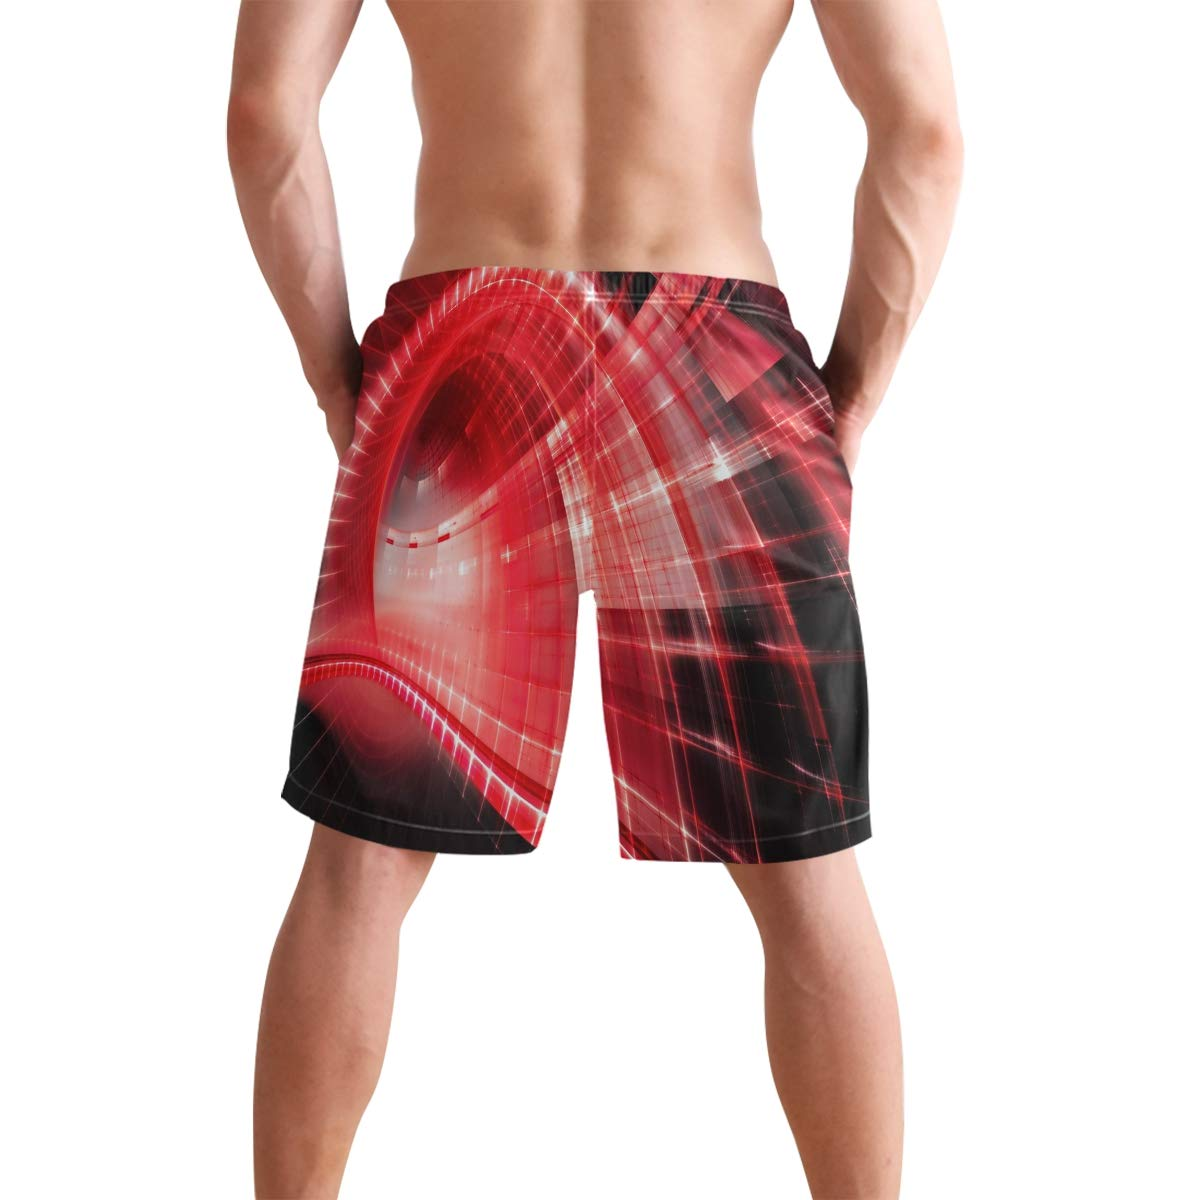 KVMV Red Neon Symbol Background with Different Shapes 5size Beach Shorts